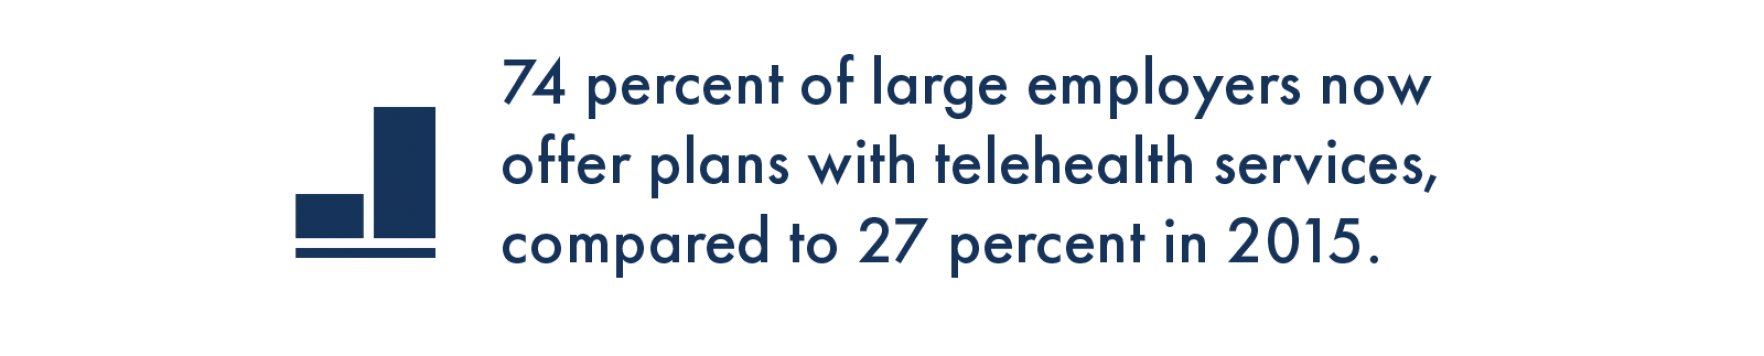 74 percent of large employers now offer plans with telehealth services, compared to 27 percent in 2015.